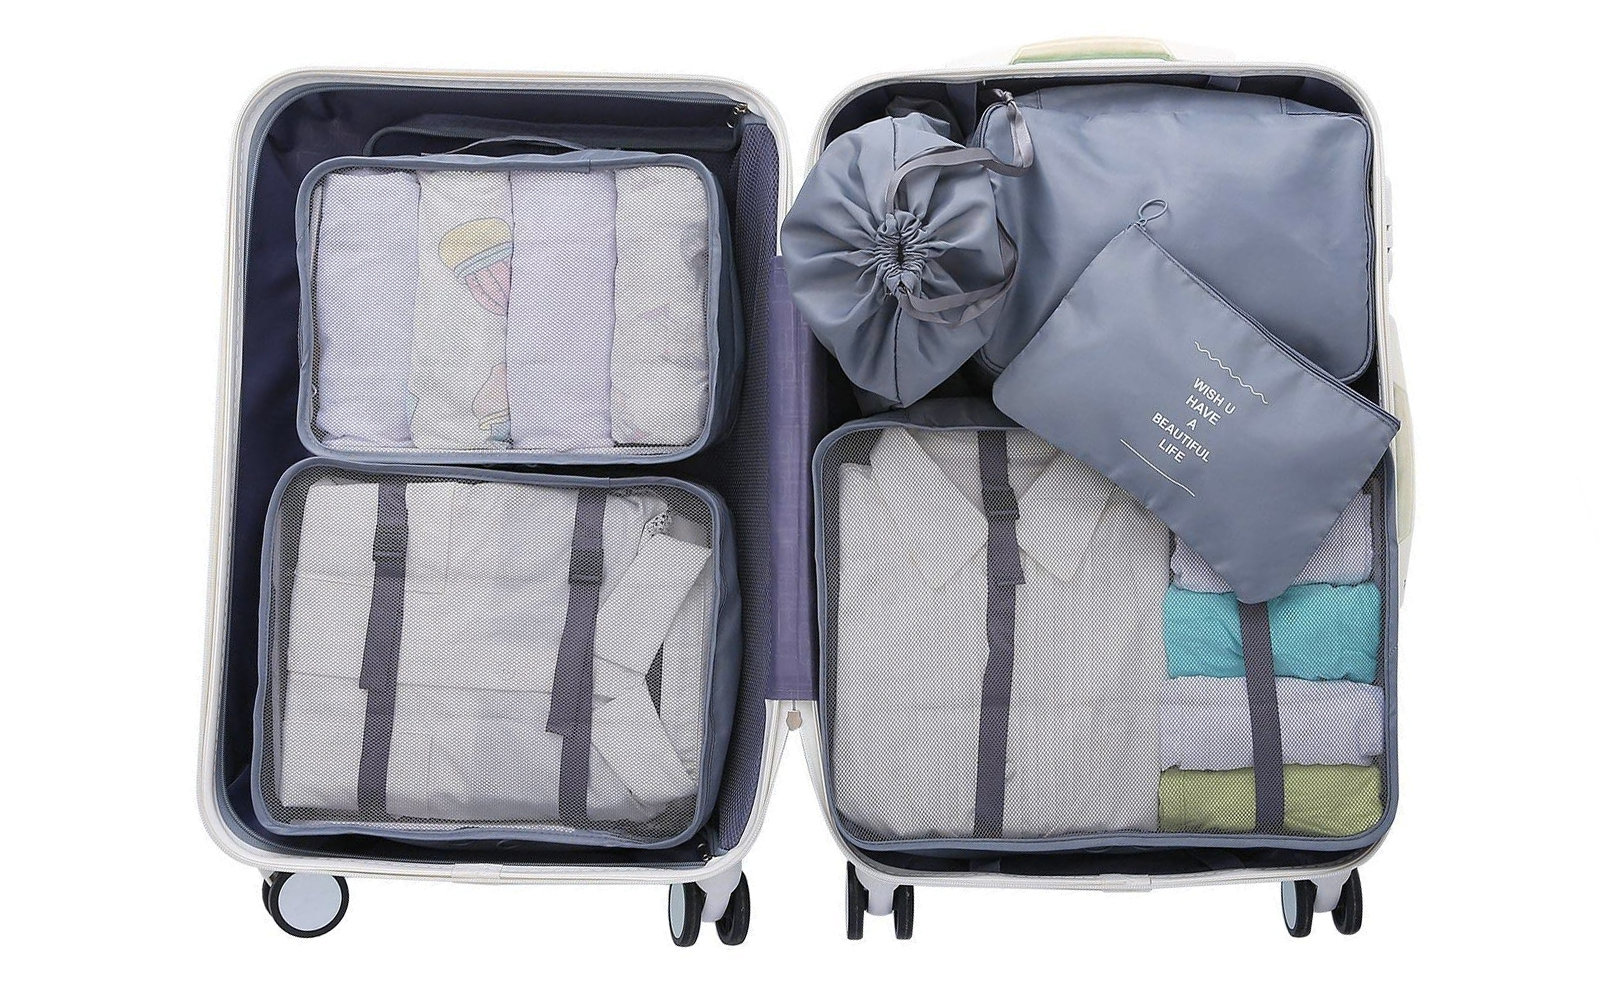 ad3752e61 These Are the Top 5 Best-selling Travel Packing Cubes on Amazon ...